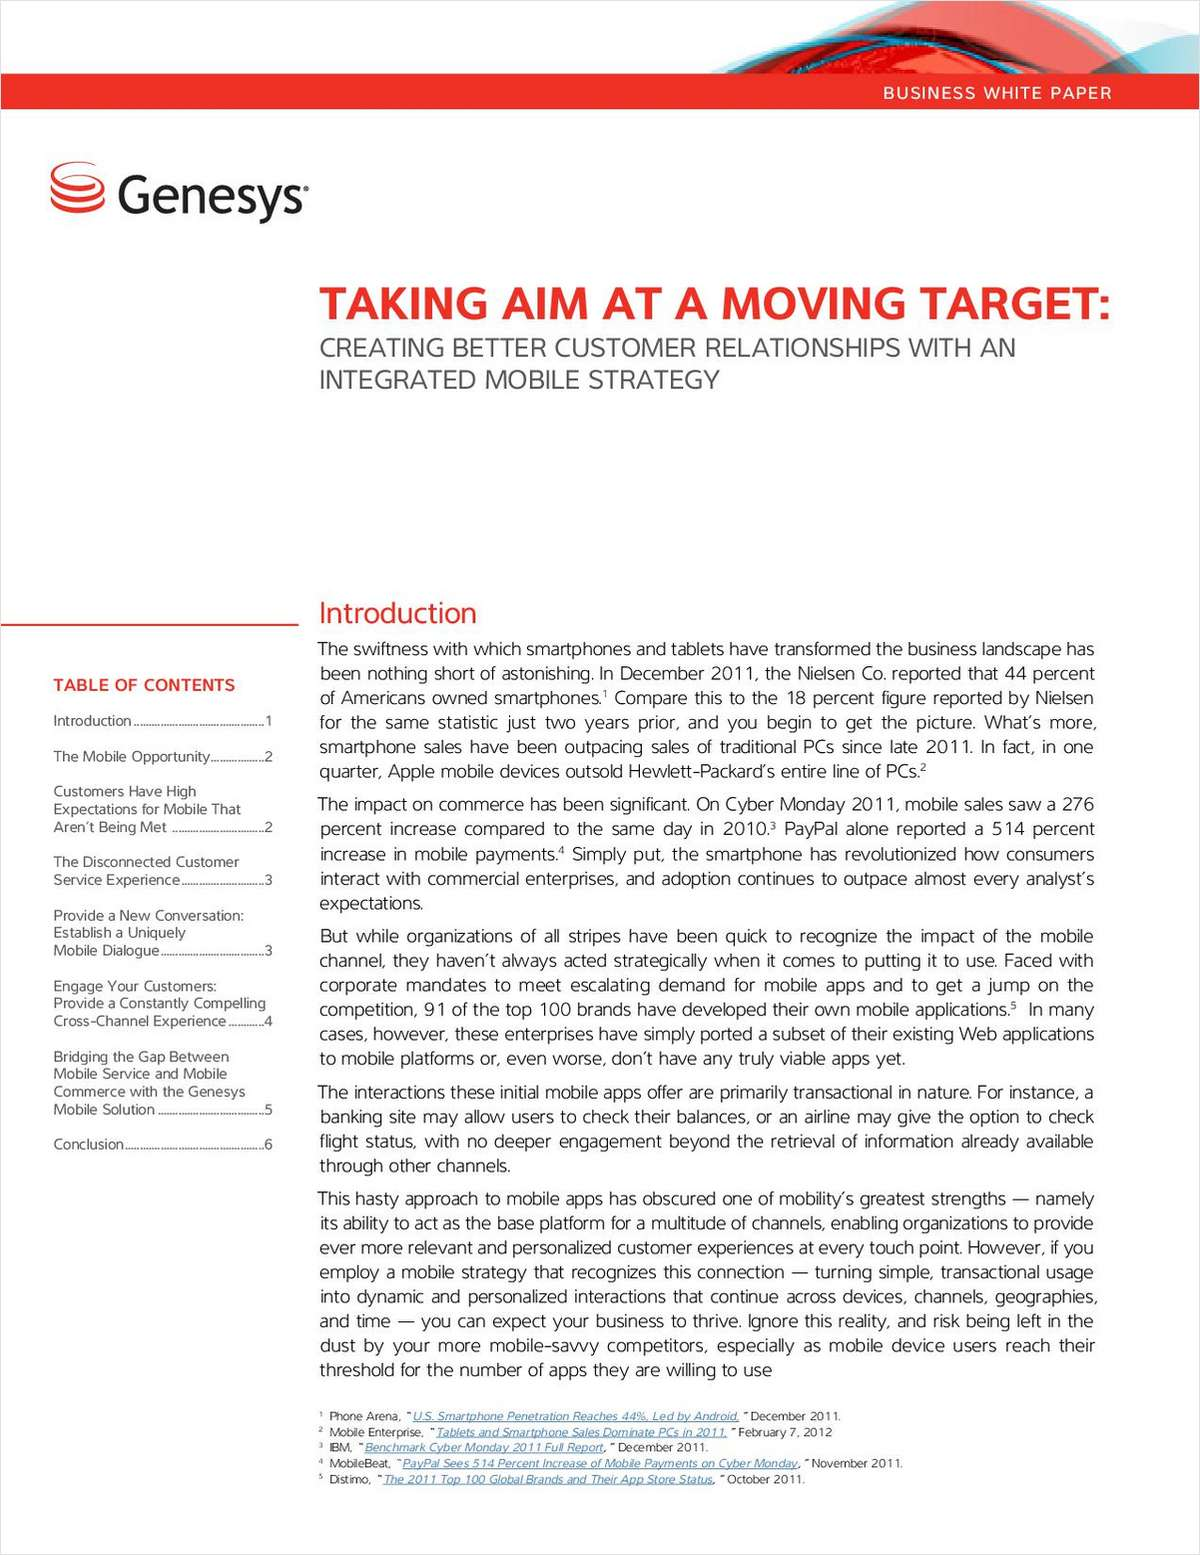 Taking Aim at a Moving Target: Creating Better Customer Relationships with an Integrated Mobile Strategy